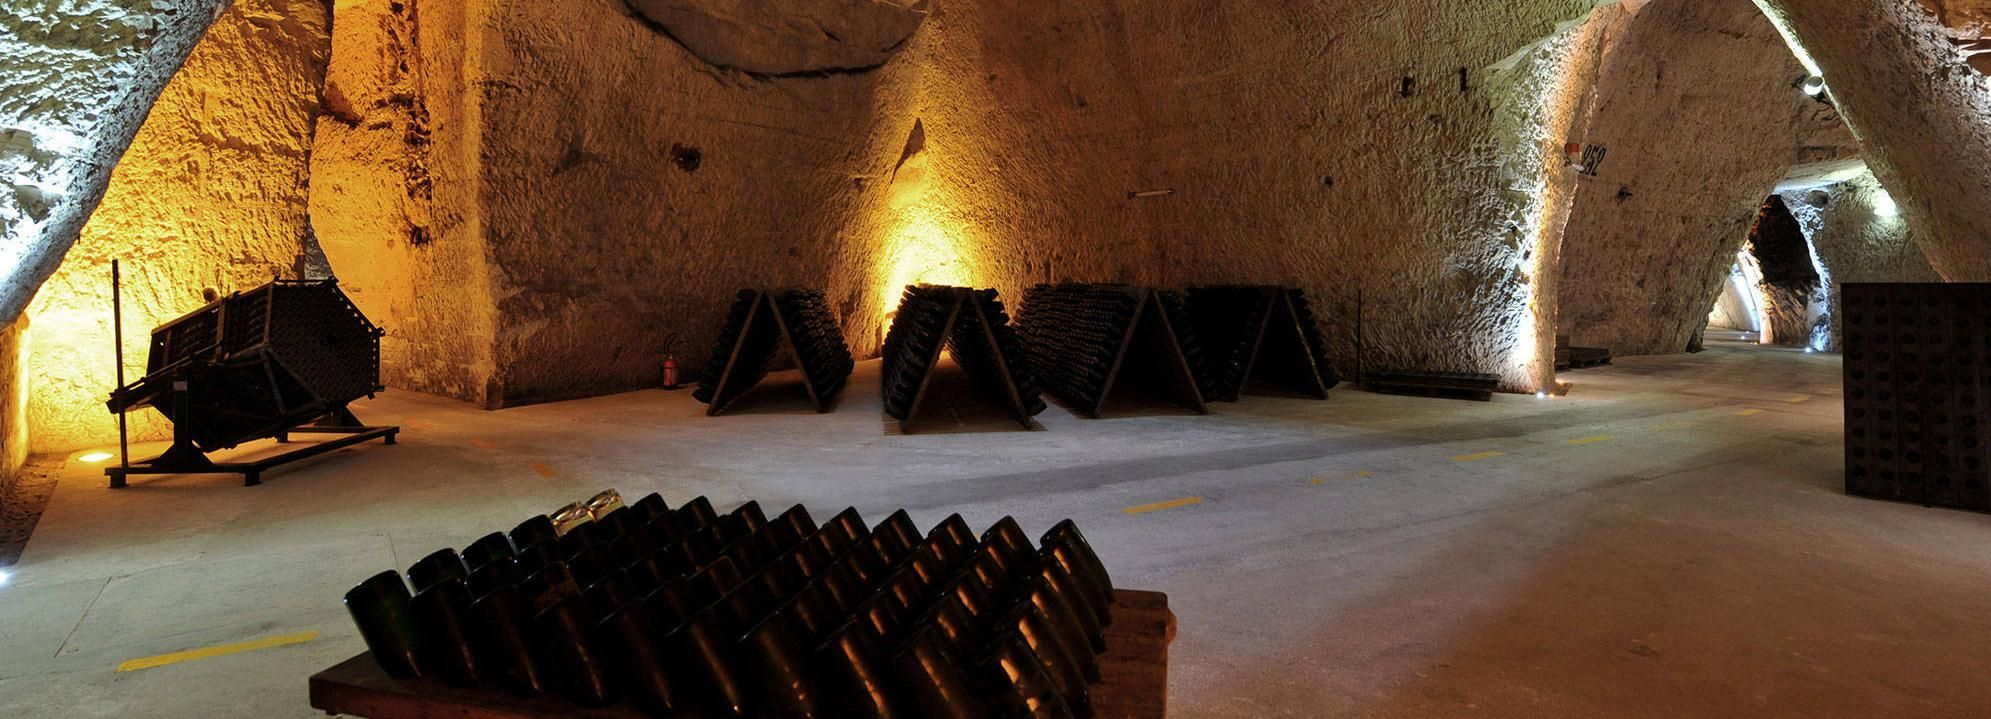 Reims: Veuve Clicquot & Family Winery Group Full-Day Tour